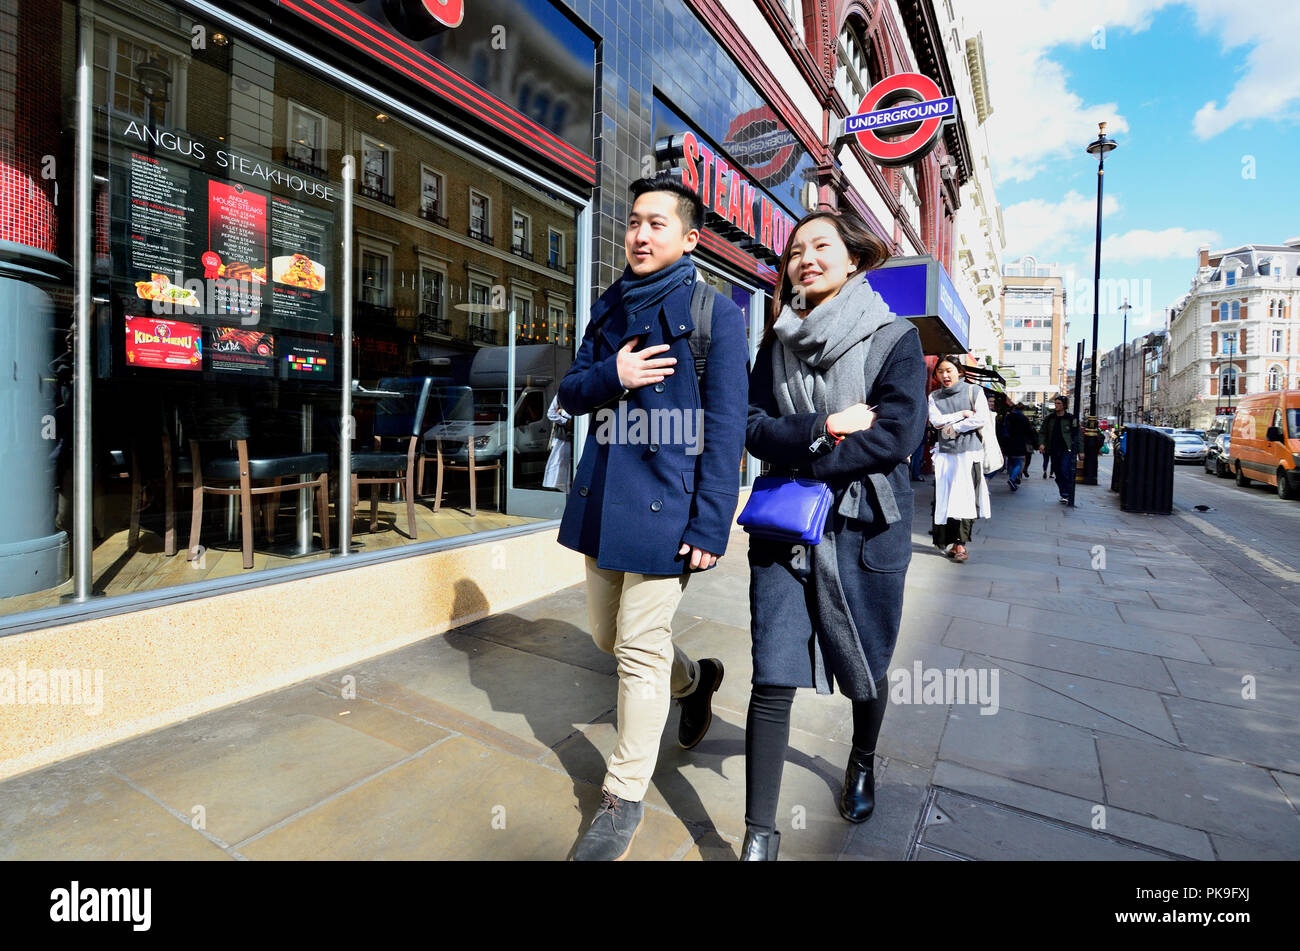 Young Chinese couple passing Leicester Square tube station. London, England, UK. - Stock Image